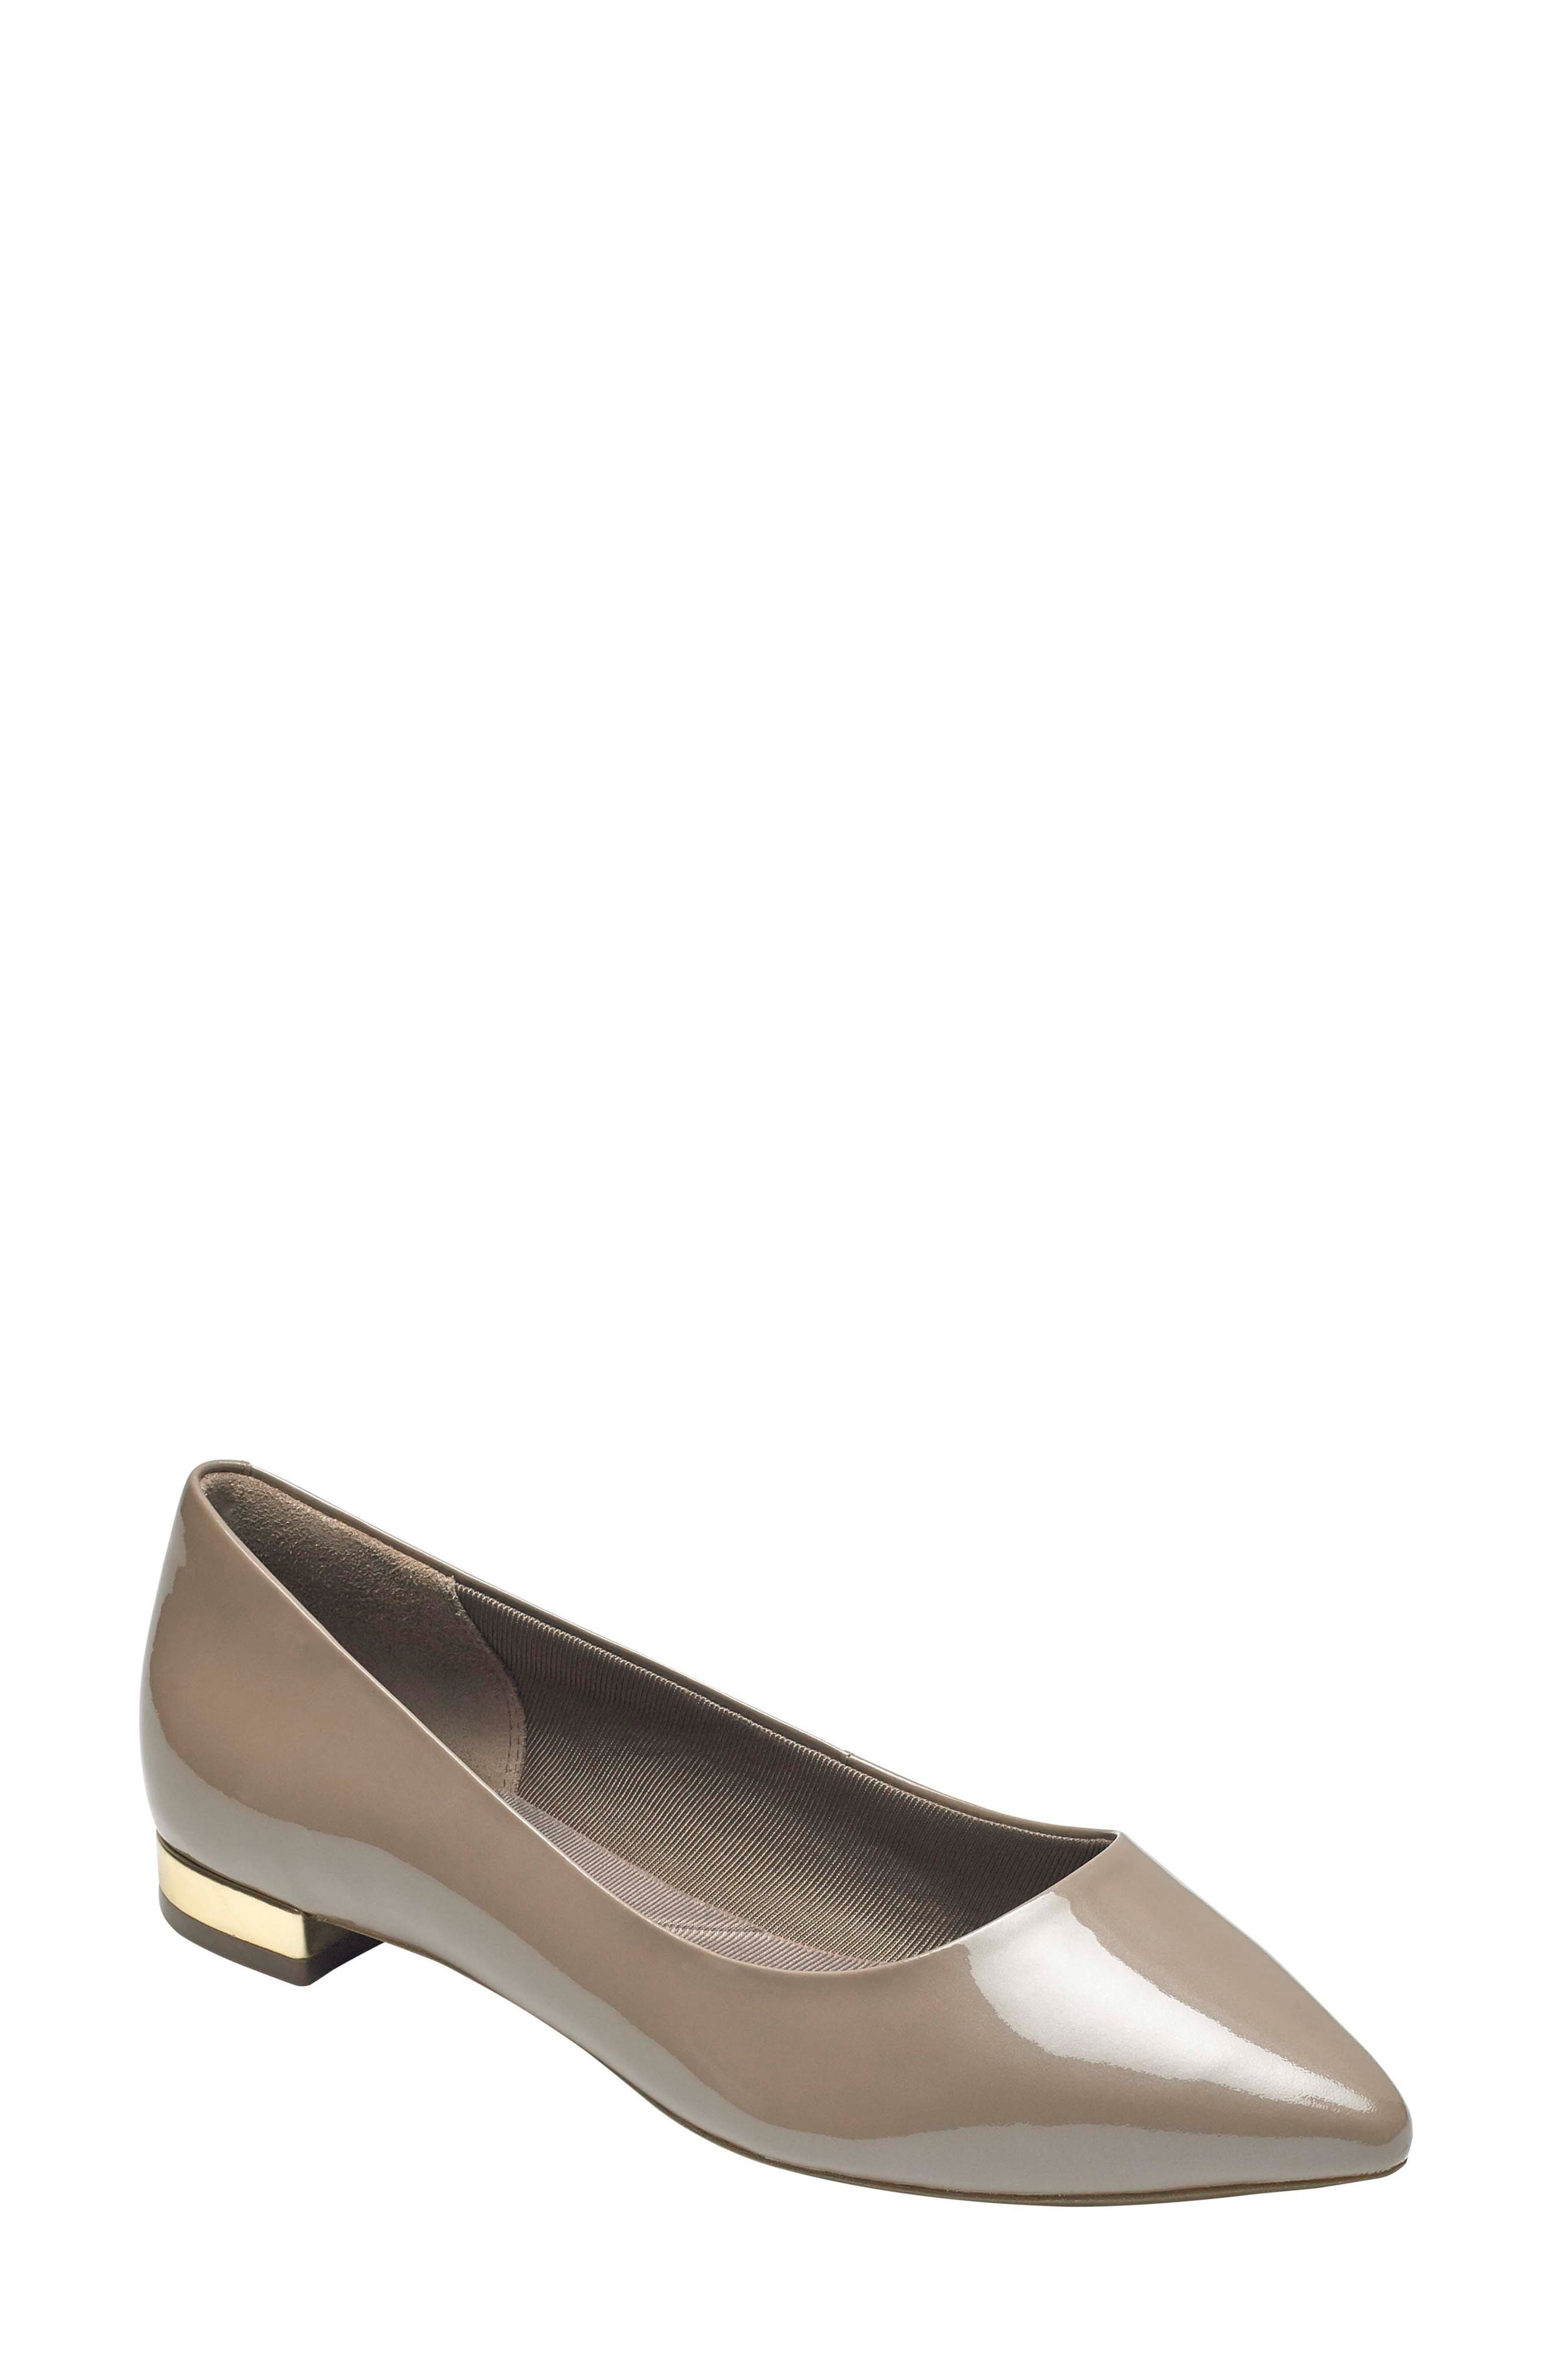 'Total Motion - Adelyn' Ballet Flat,                         Main,                         color, TAUPE GREY PEARL PATENT